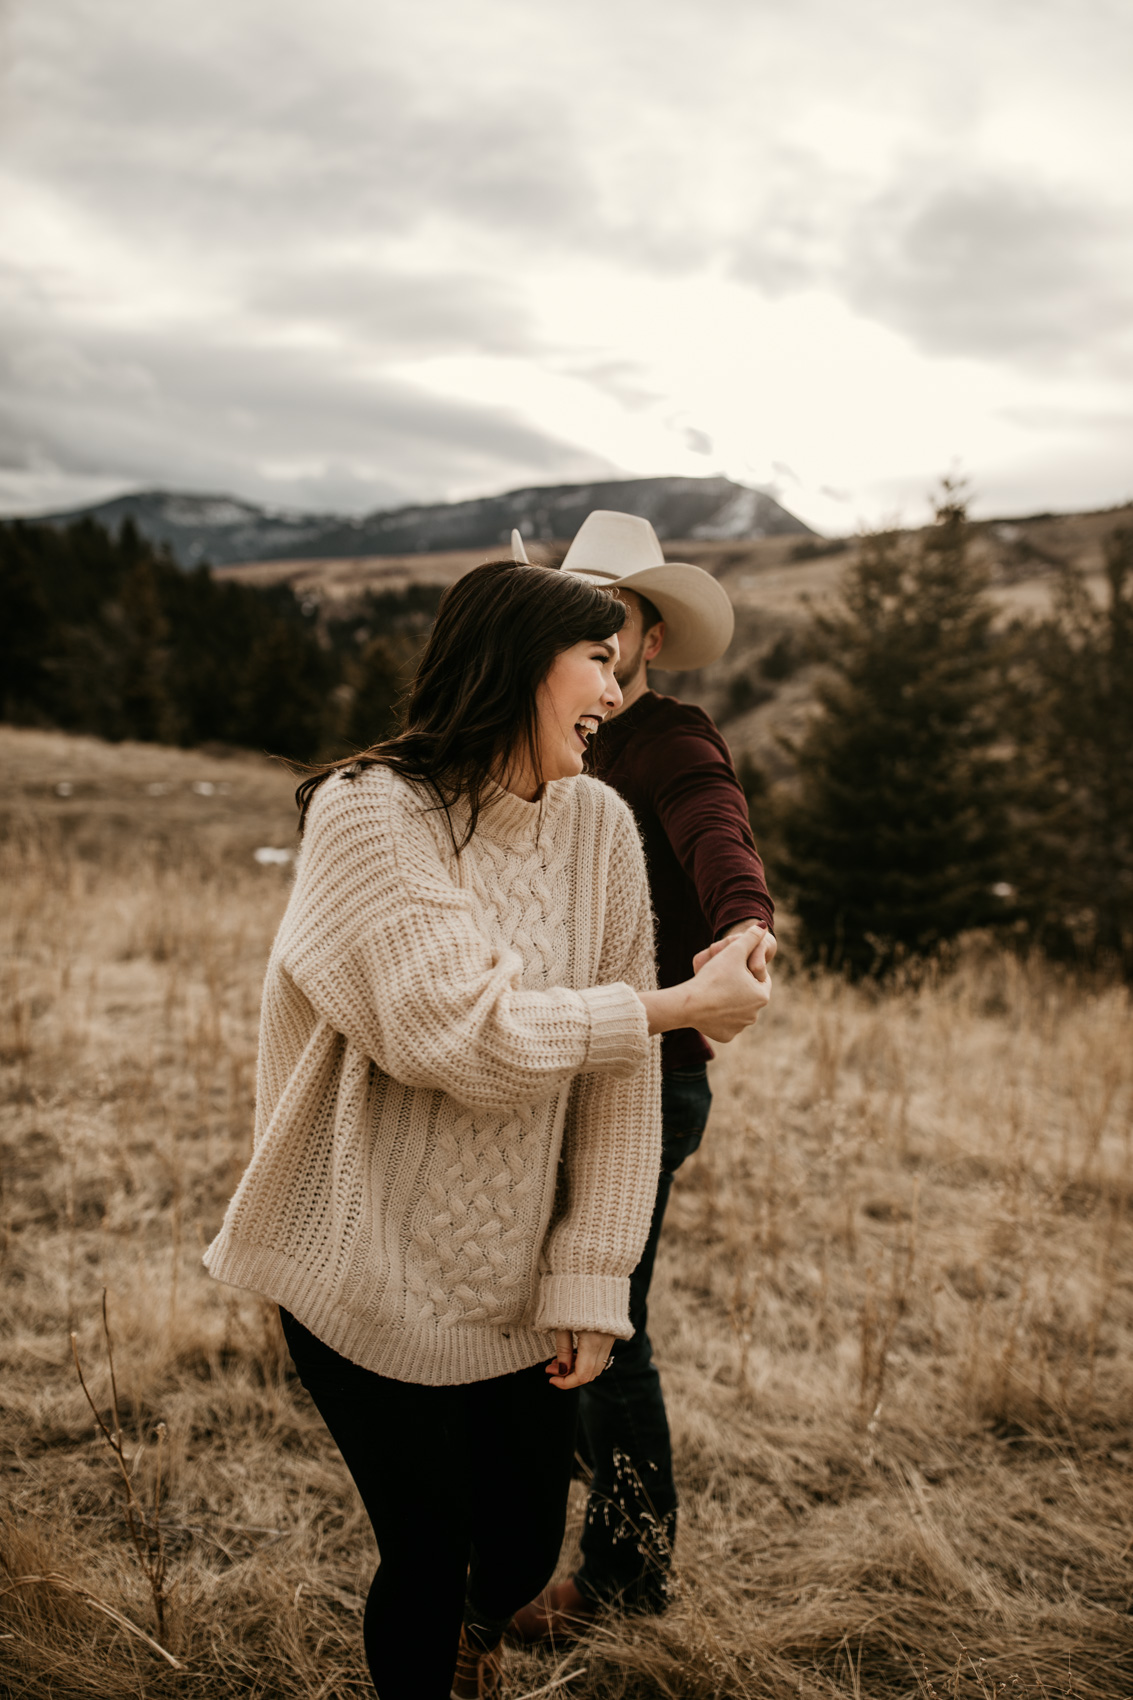 Molly-Trenton_Montana-Waterfall-Engagment-Session-67.jpg